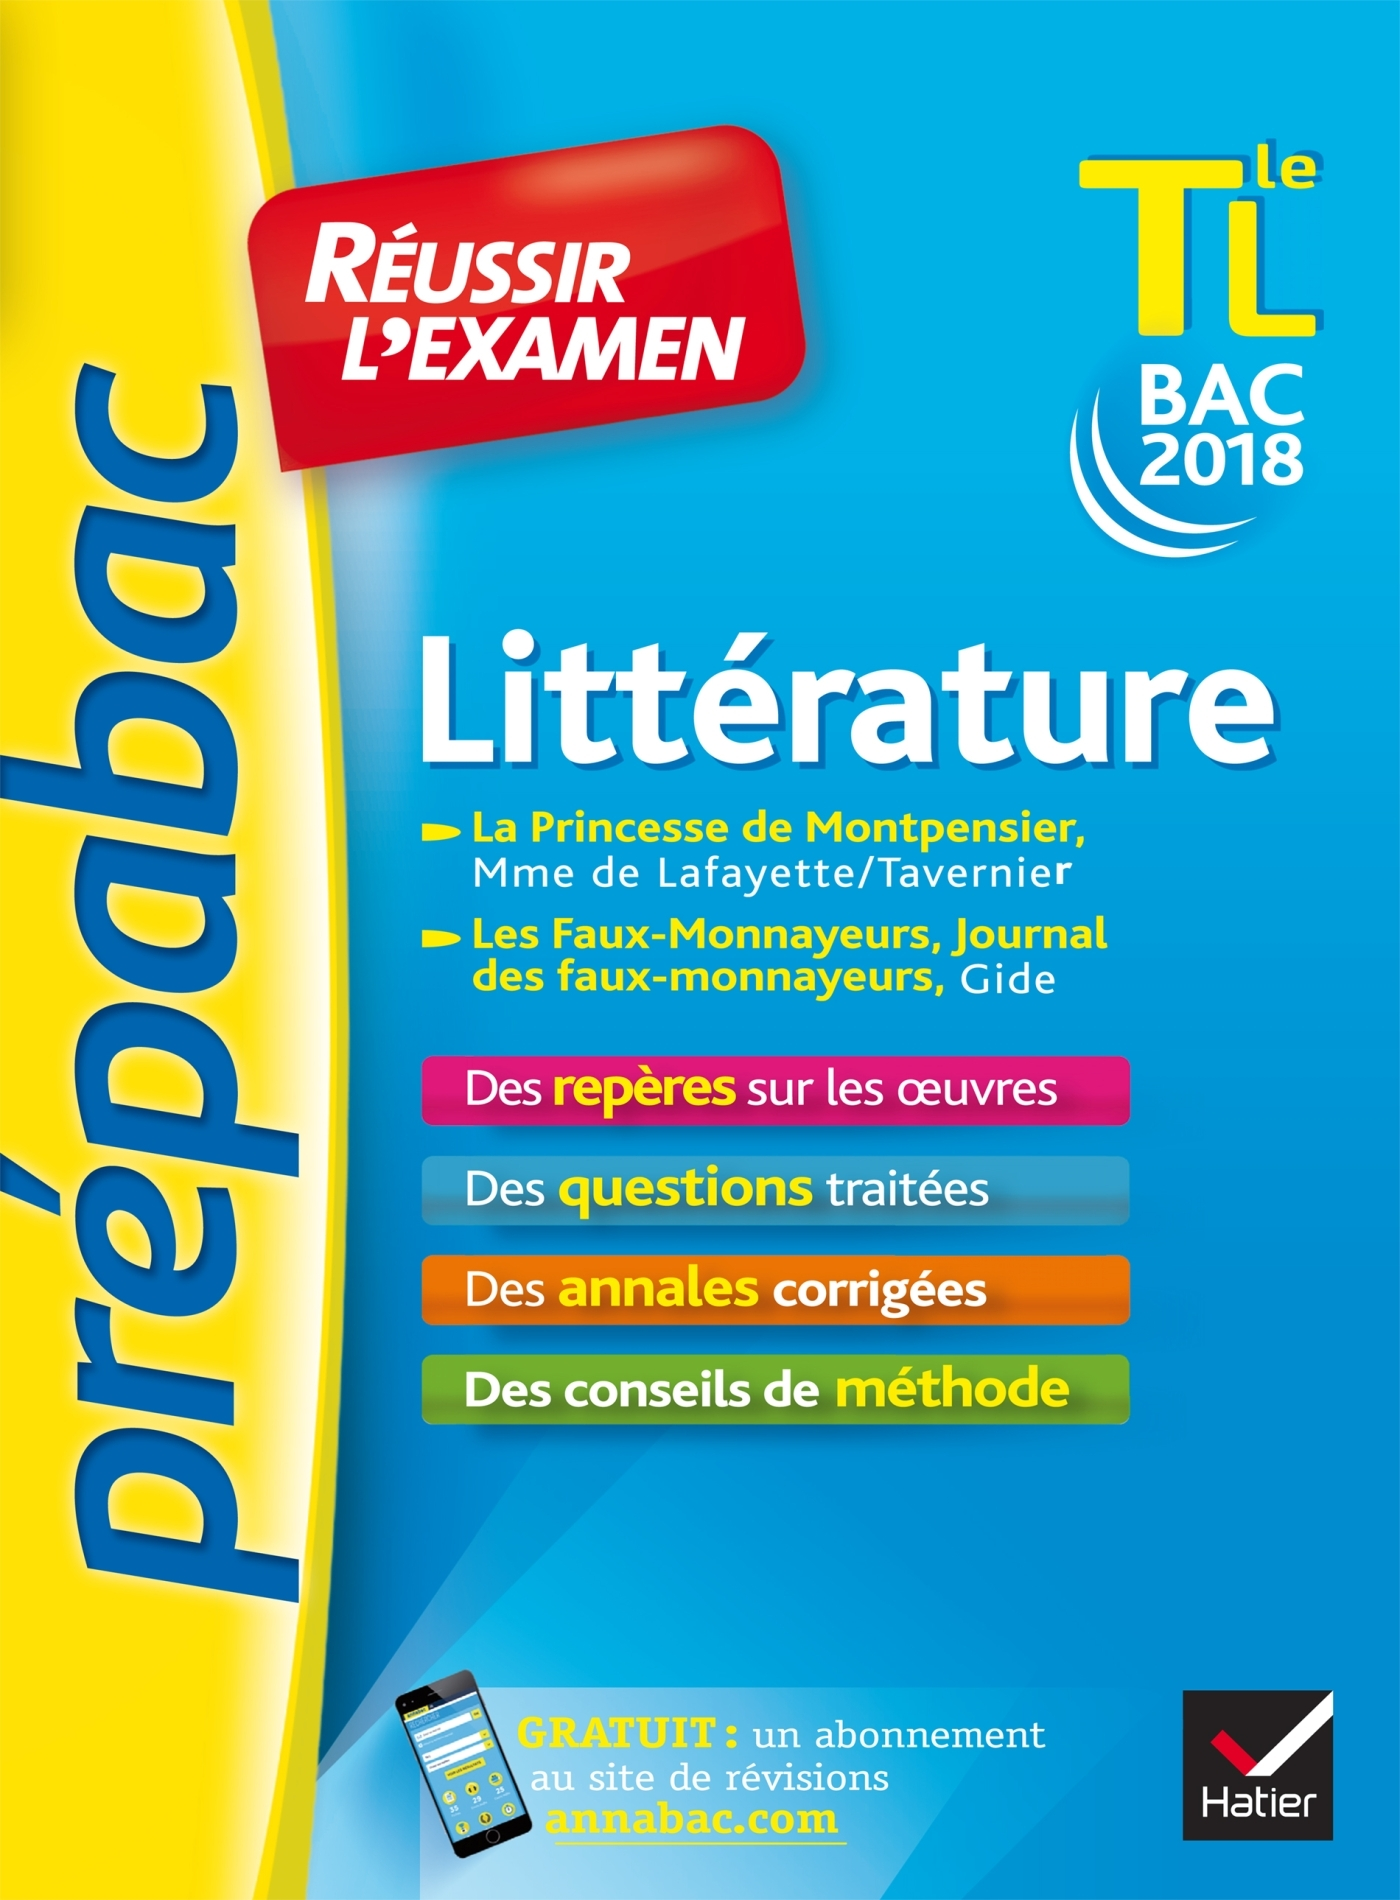 LITTERATURE TLE L BAC 2018